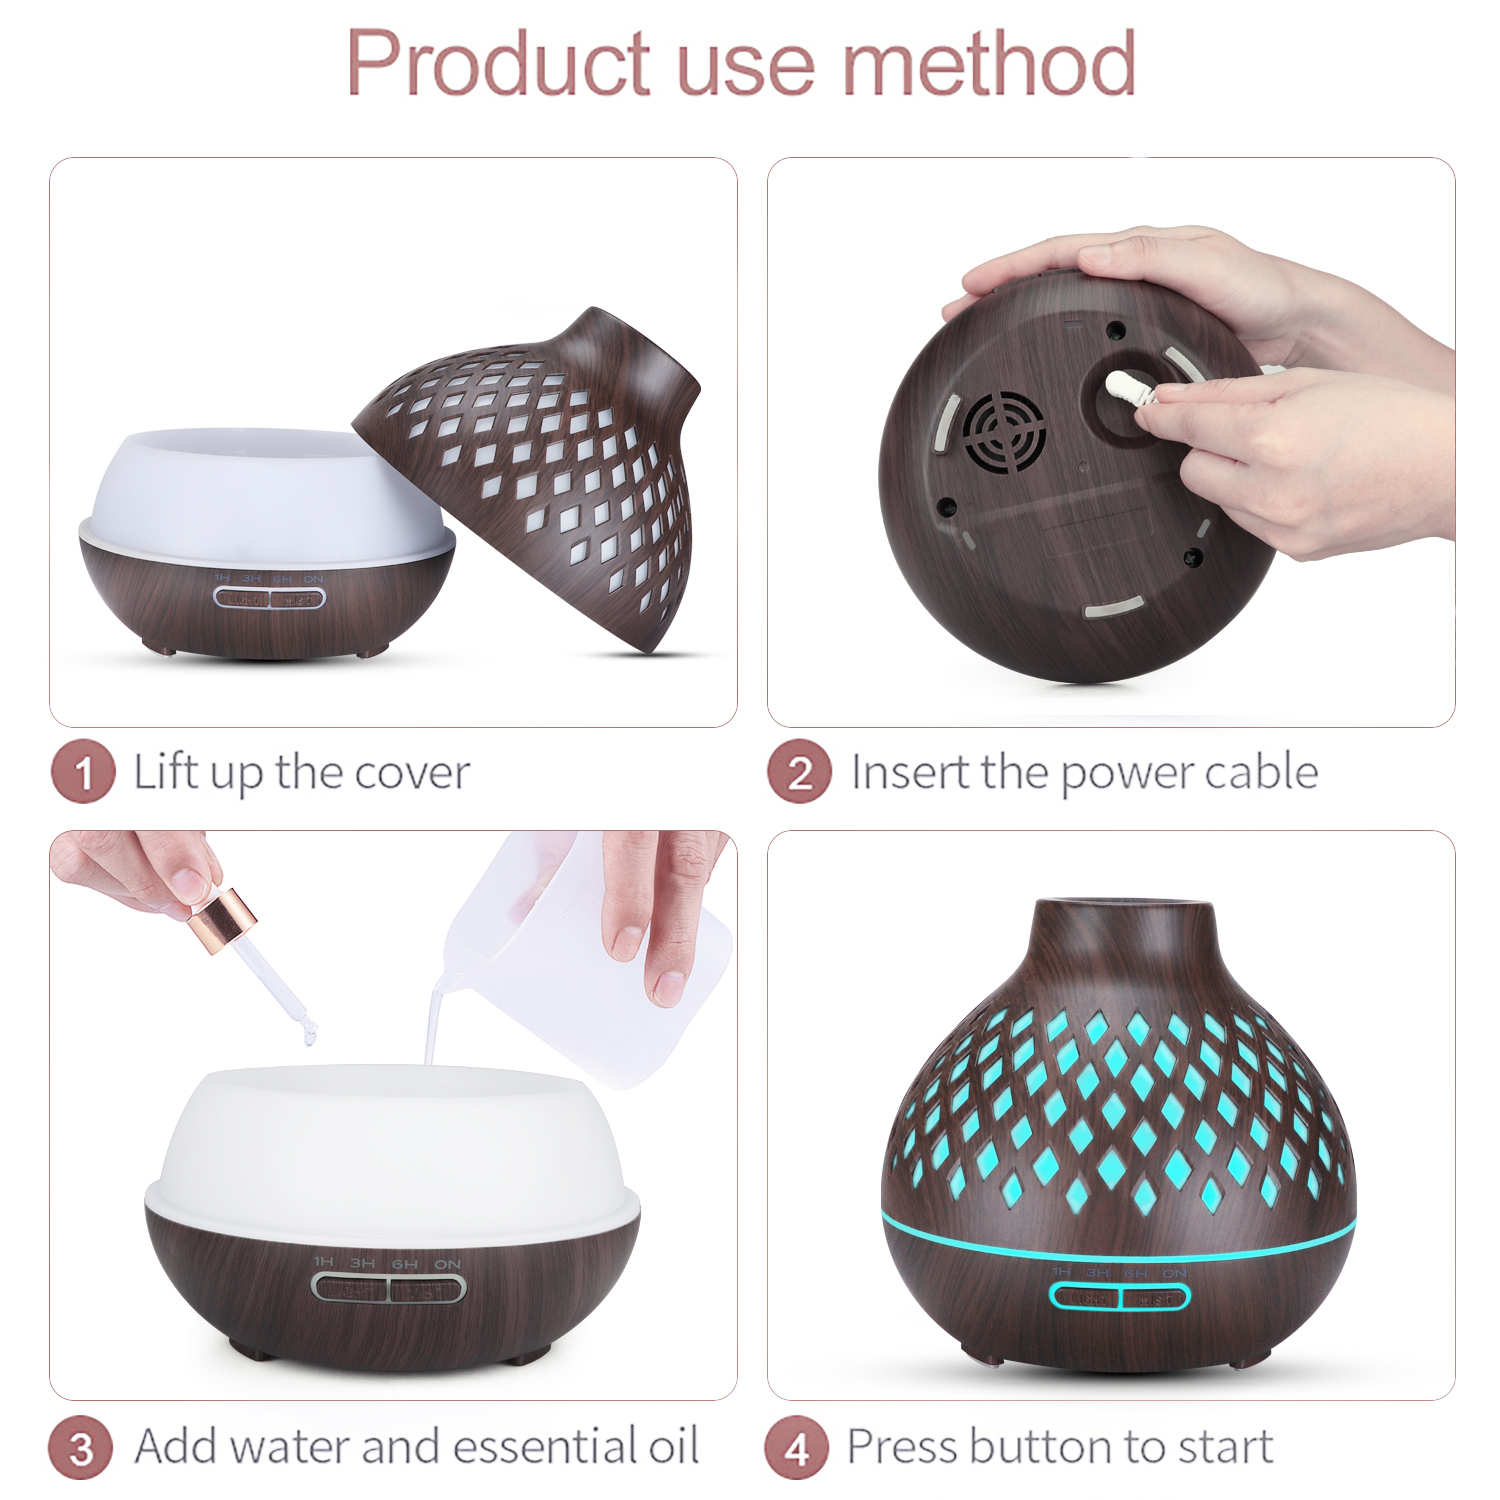 Grenade aromatherapy diffuser